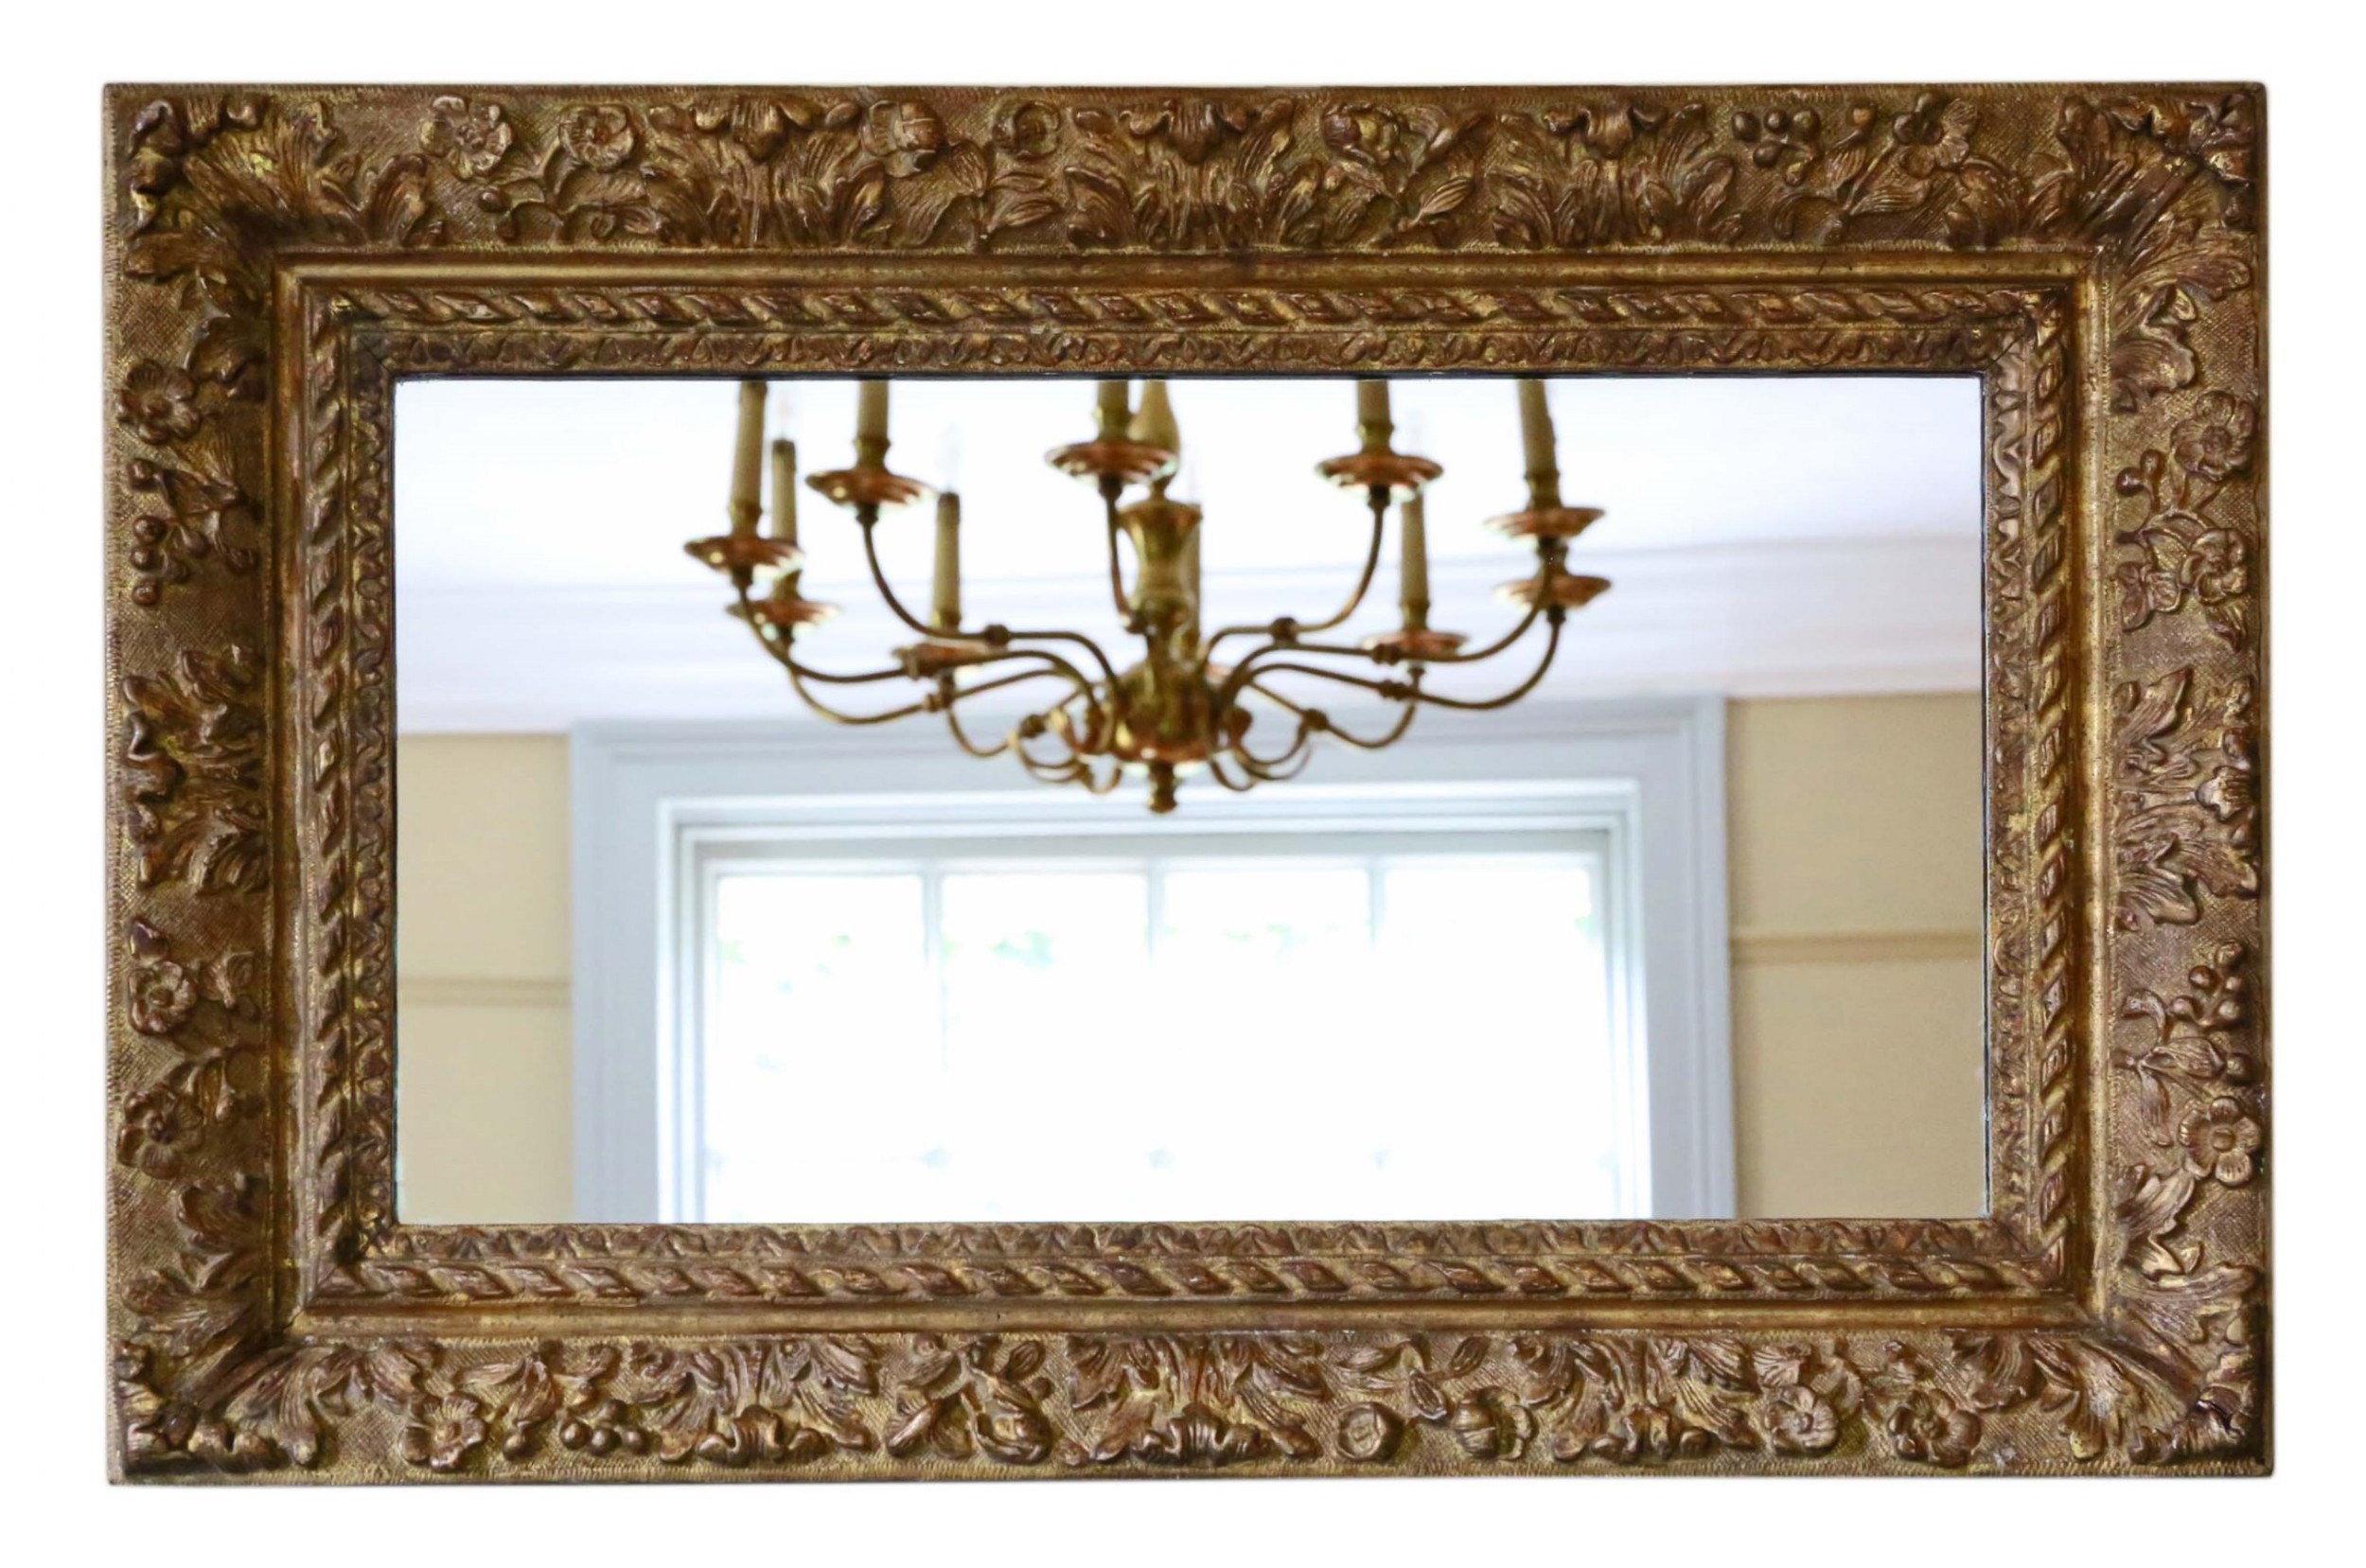 19th century louis xiv style gilt overmantle wall mirror